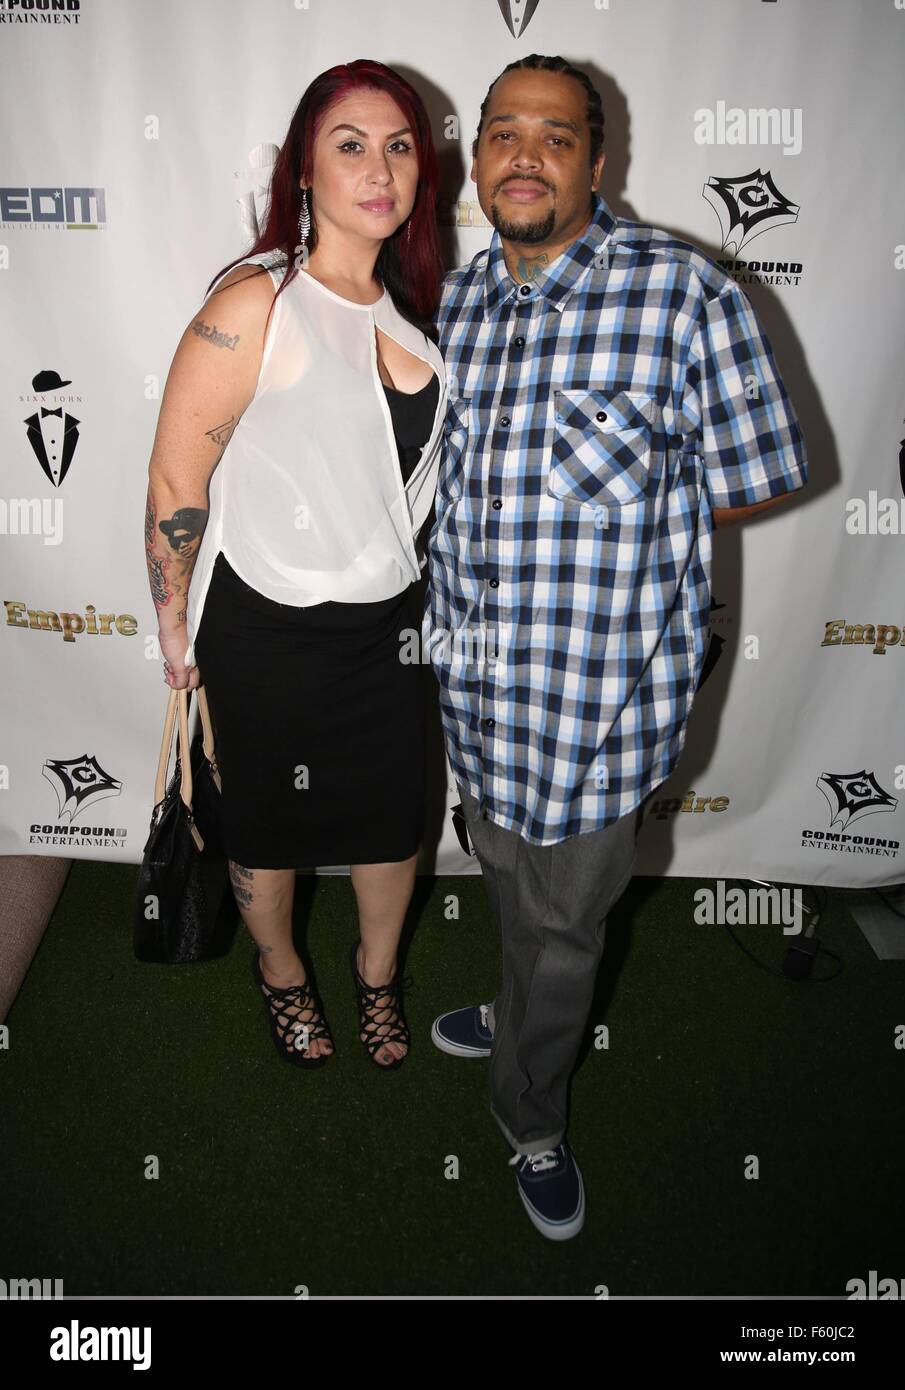 Sixx John & Ne-Yo's Empire Premiere Party hosted by Columbus Short Featuring: Babee Loc Where: Los Angeles, California, United States When: 24 Sep 2015